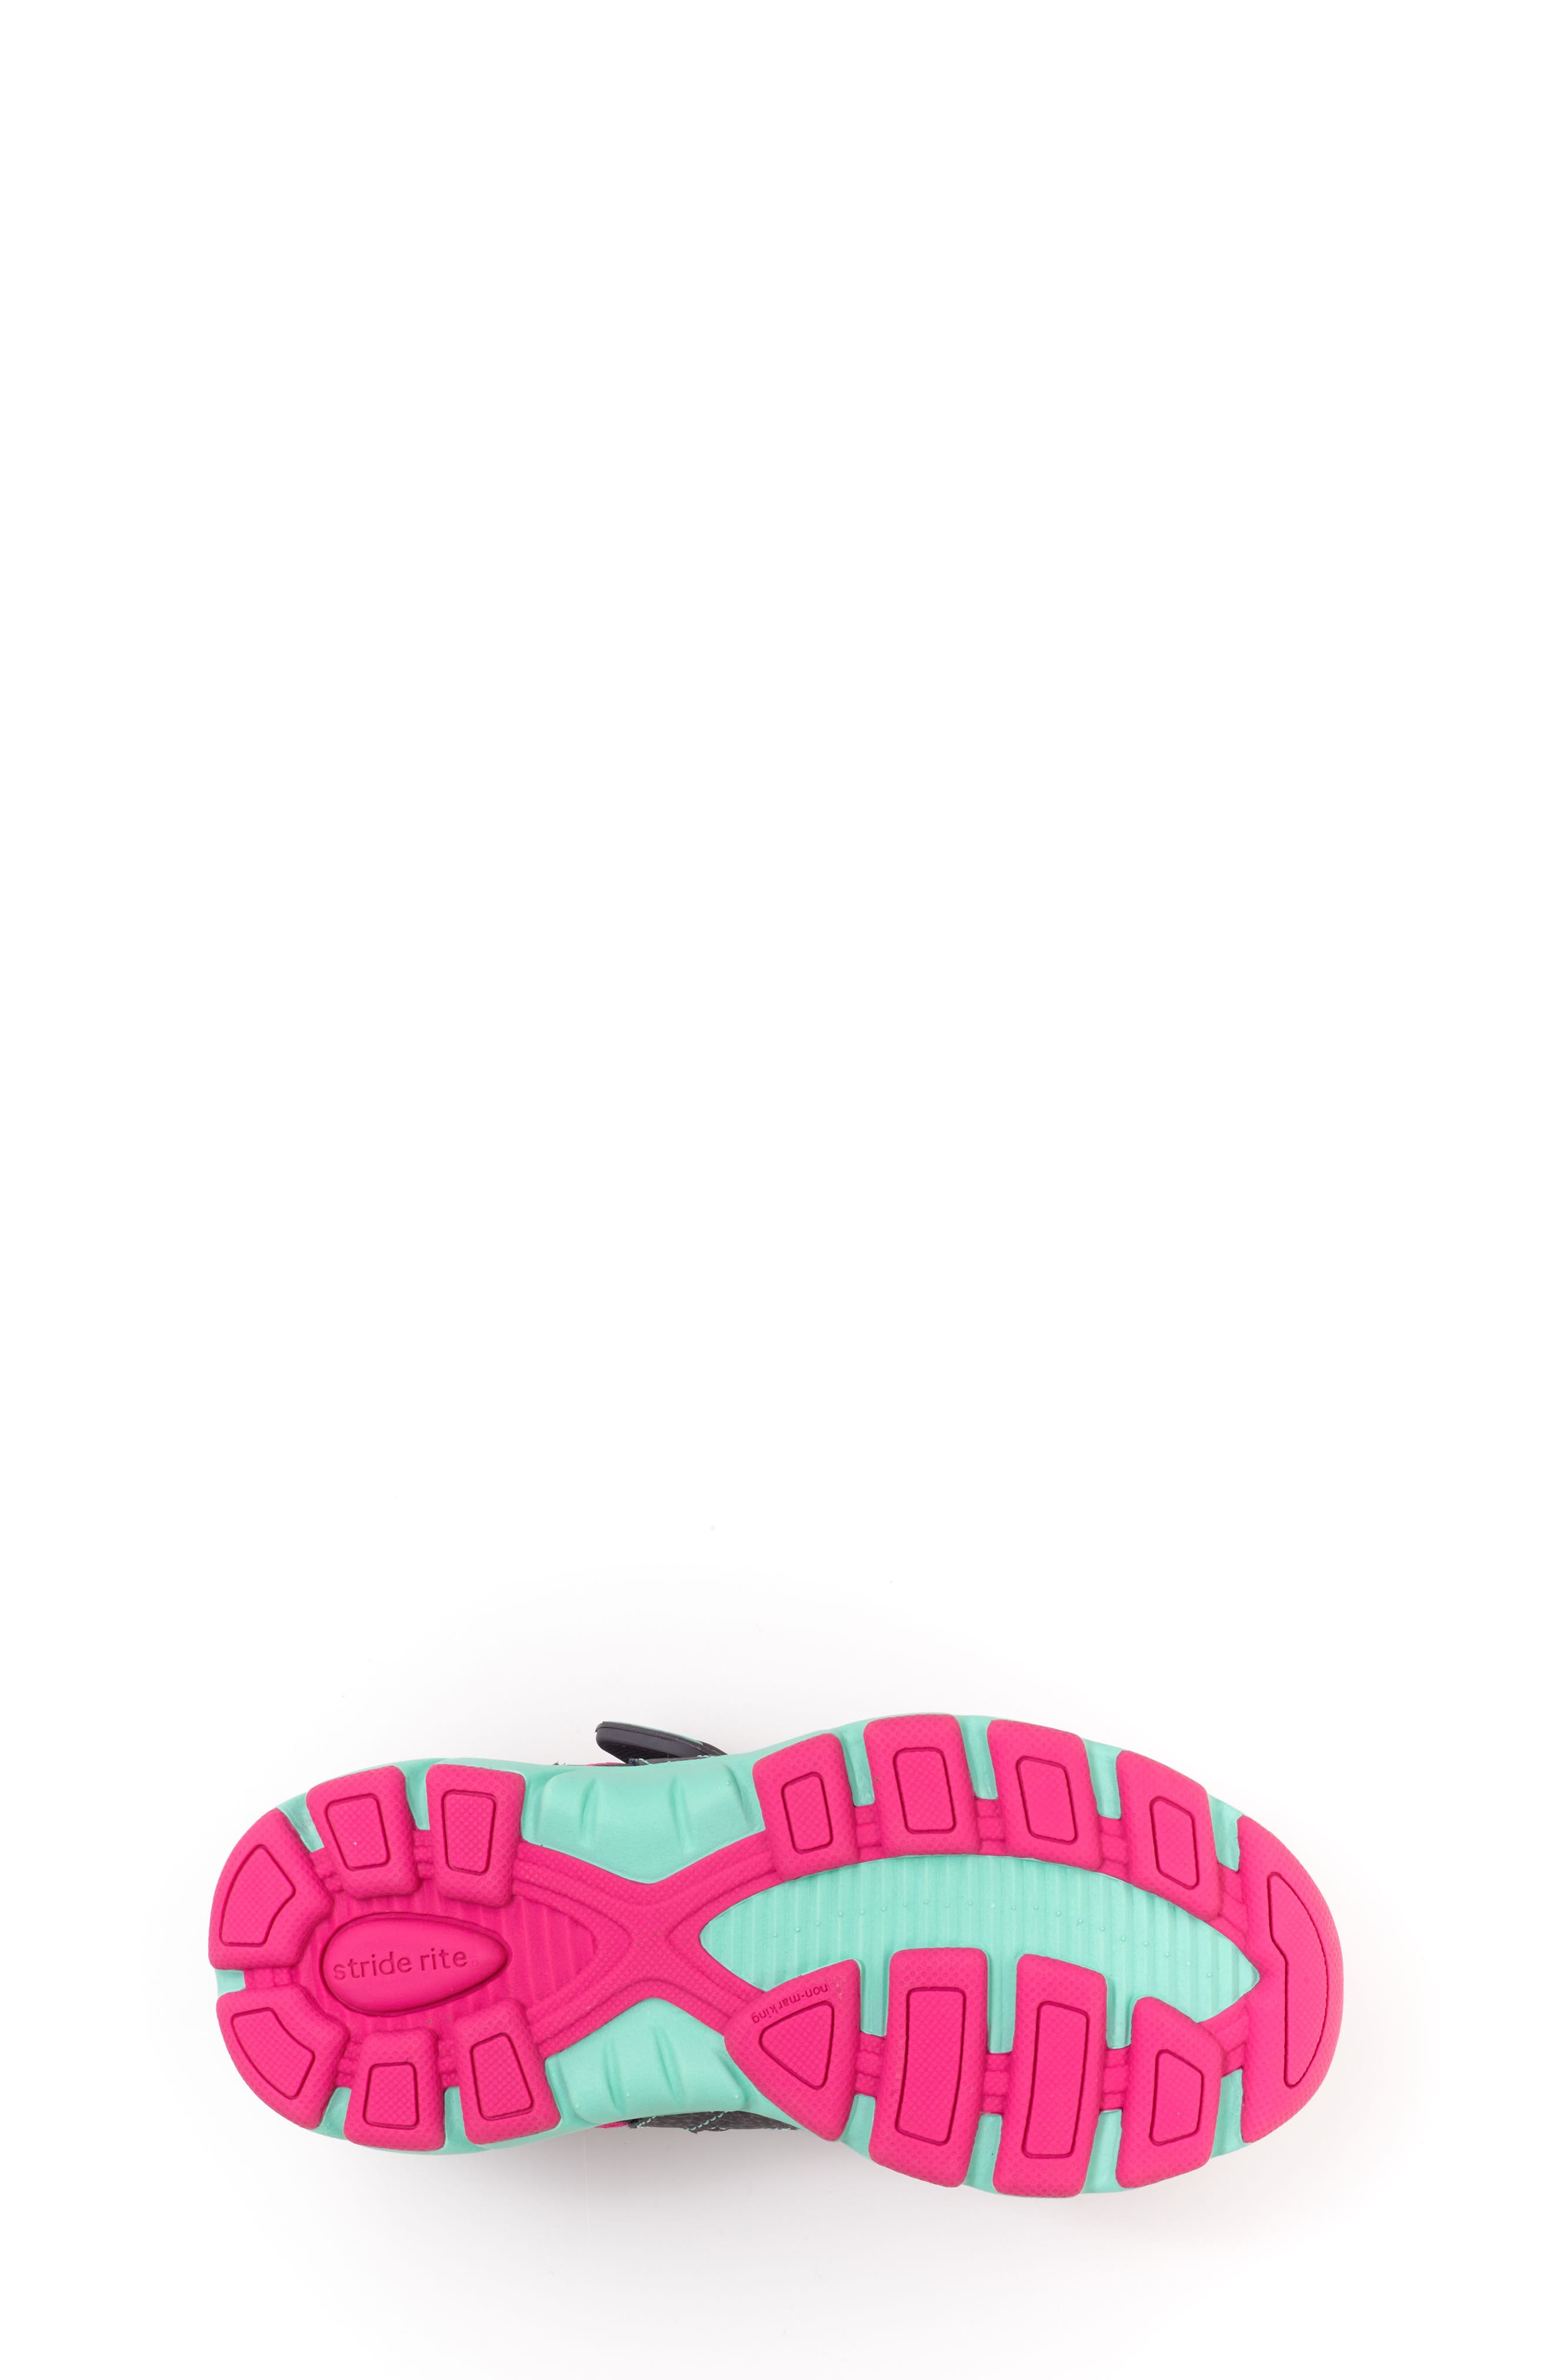 STRIDE RITE,                             Made2Play<sup>®</sup> Ryder Washable Sneaker,                             Alternate thumbnail 6, color,                             020